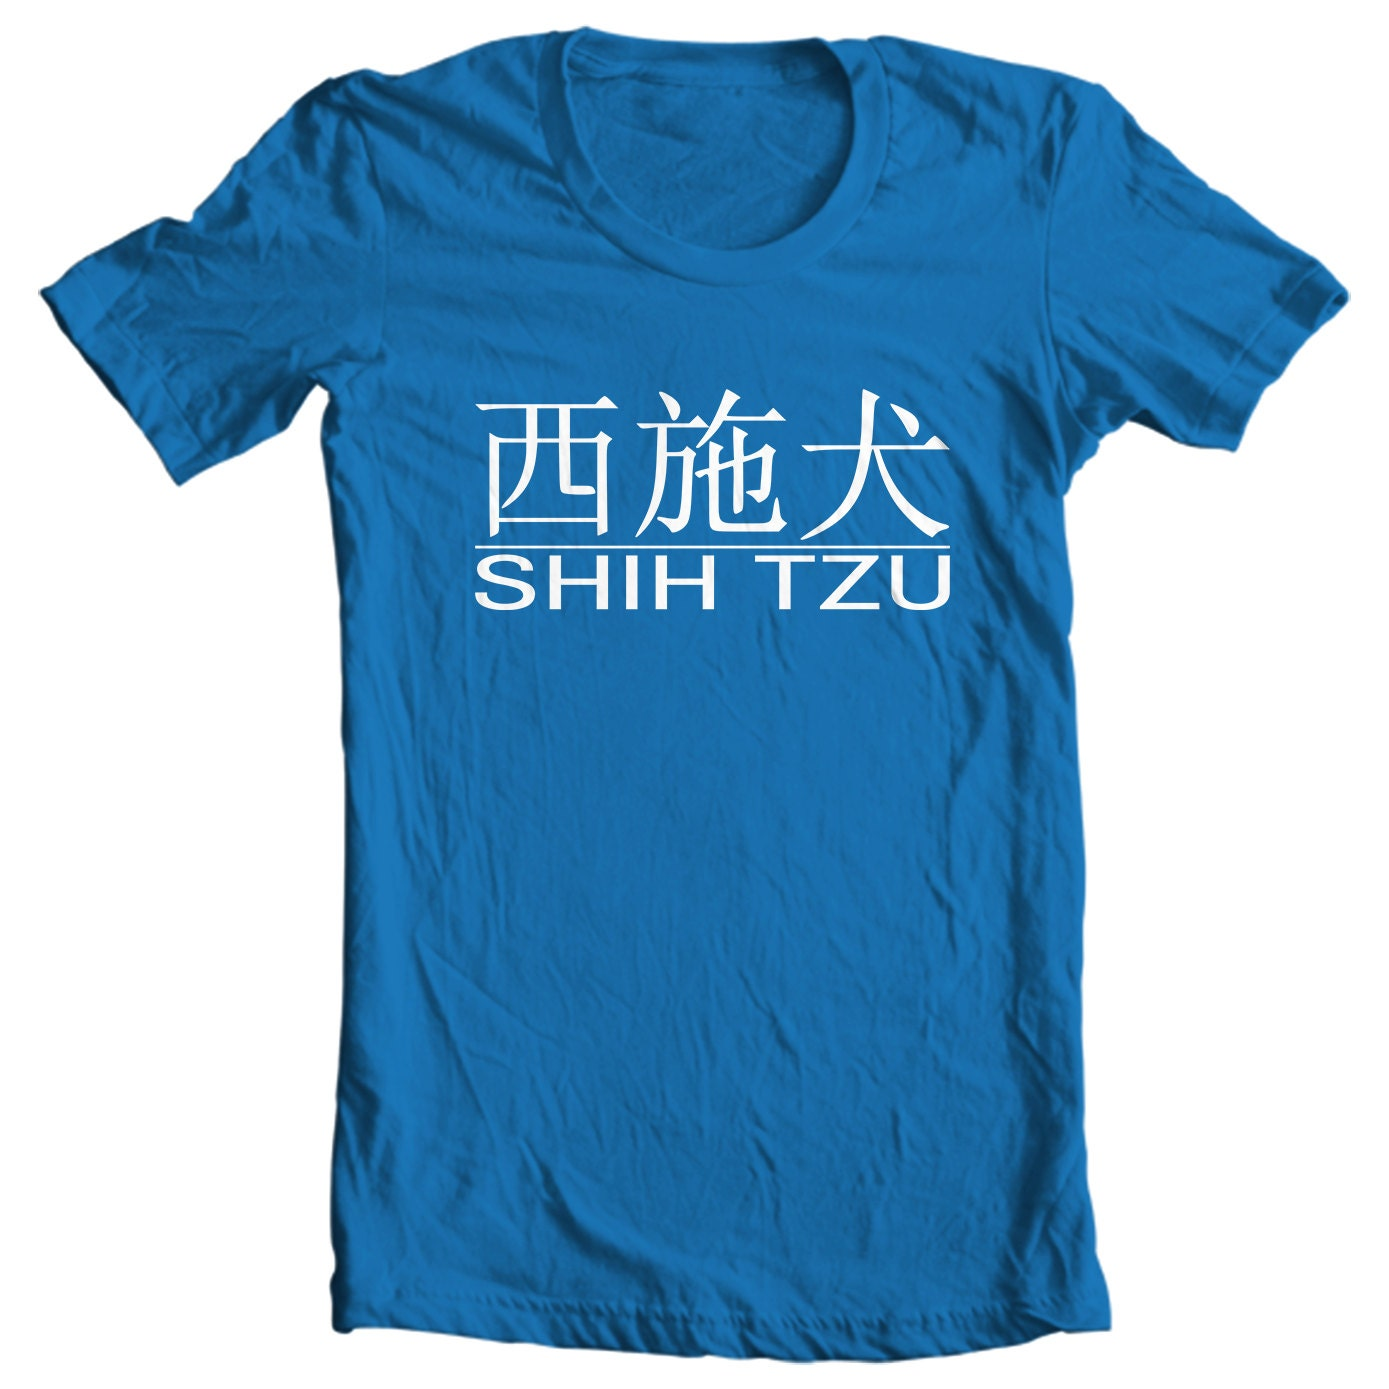 Shih Tzu Chinese Lion Dog Shirt - Only Shih Tzus